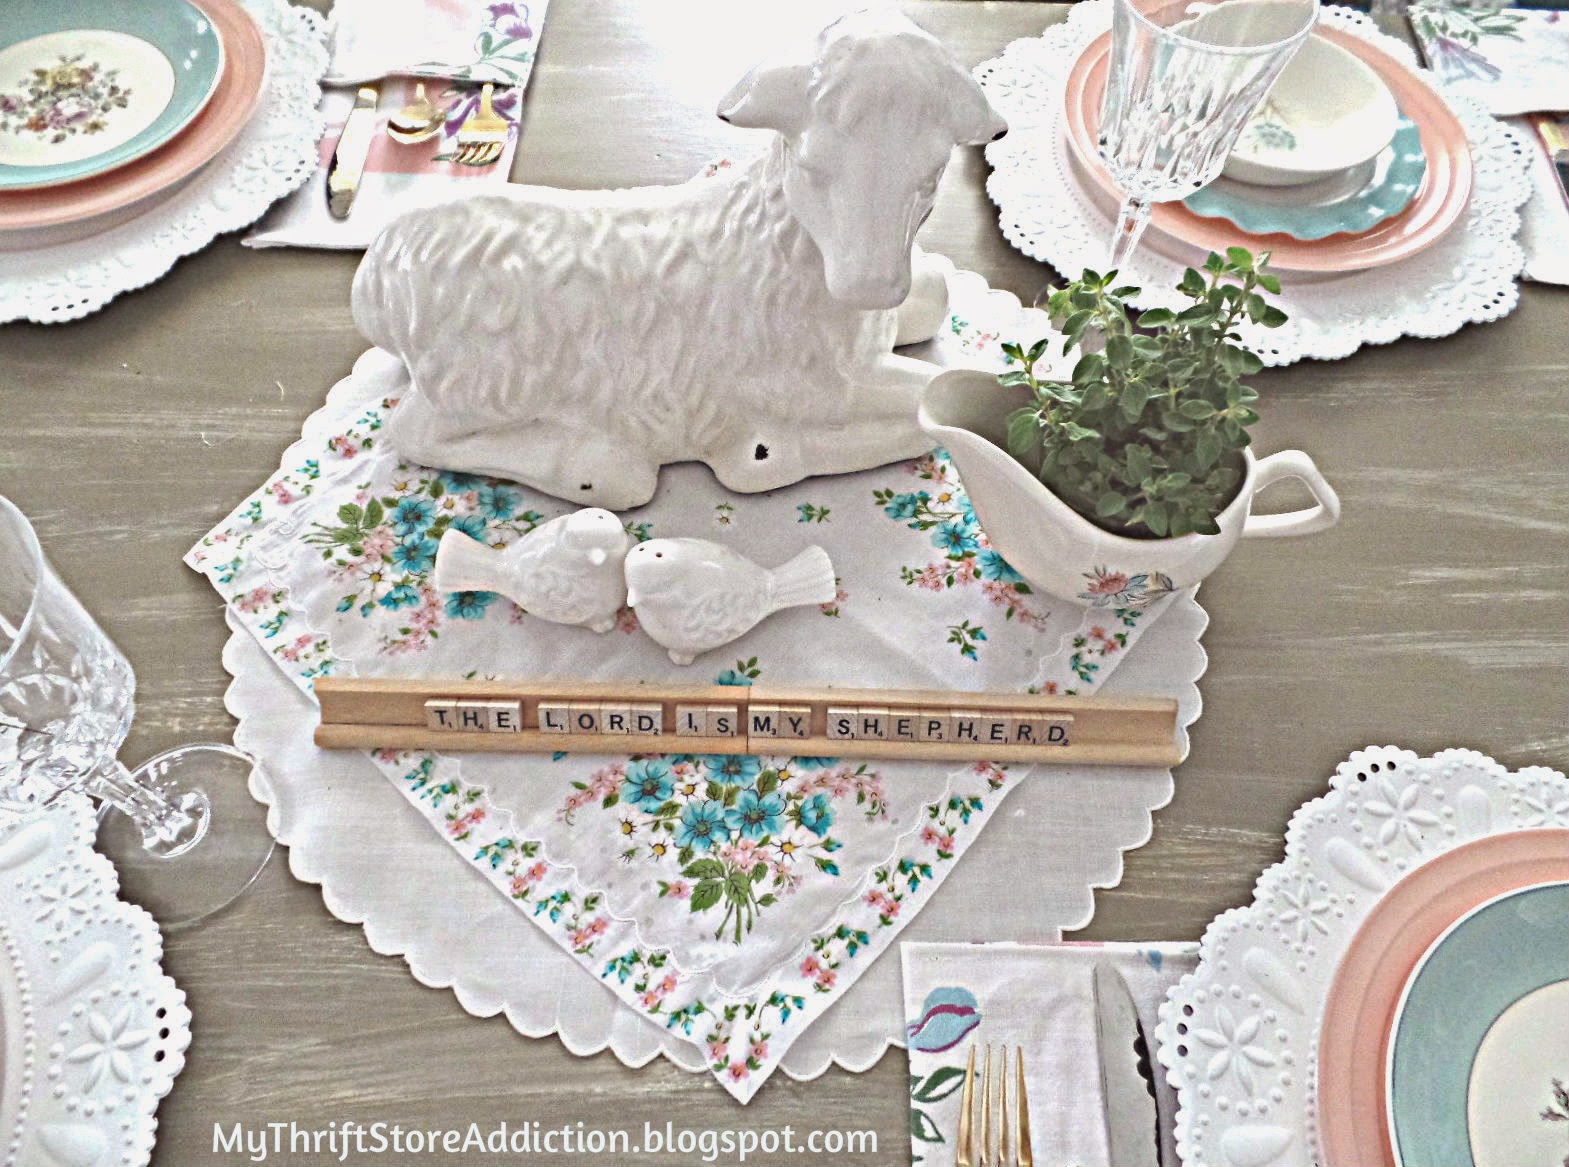 White lamb centerpiece